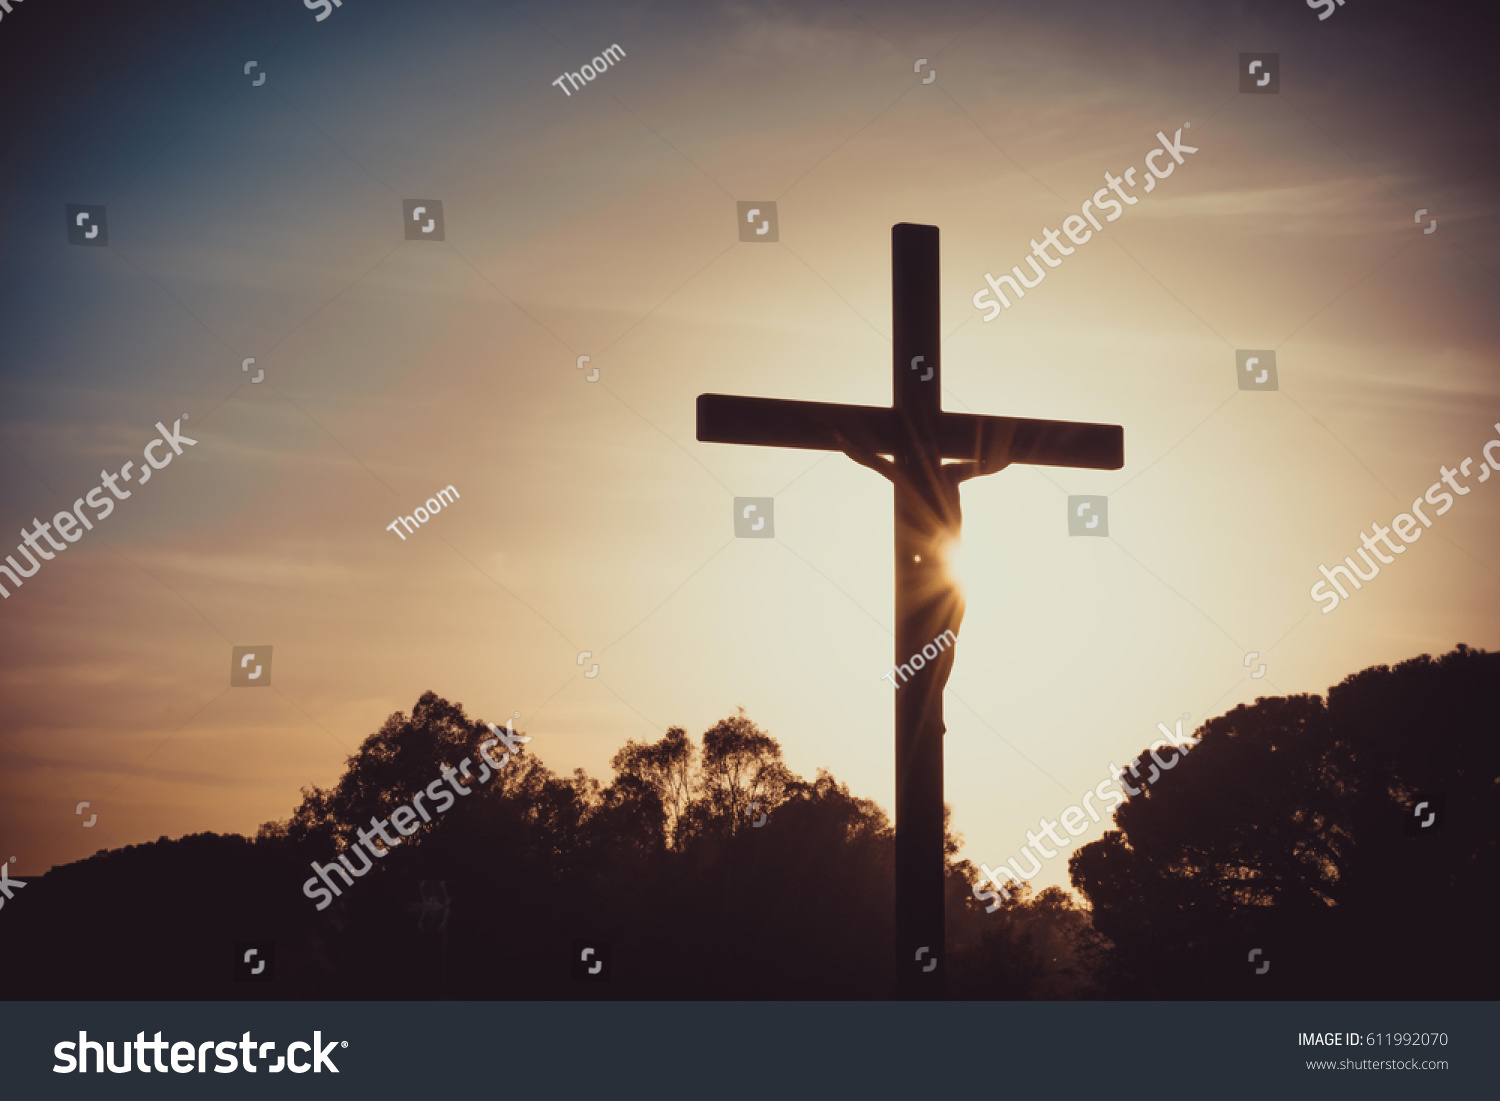 Silhouette of the holy cross on background of storm clouds stock - Jesus Christ On The Cross Silhouette At Sunset Crucifixion On The Calvary Hill Good